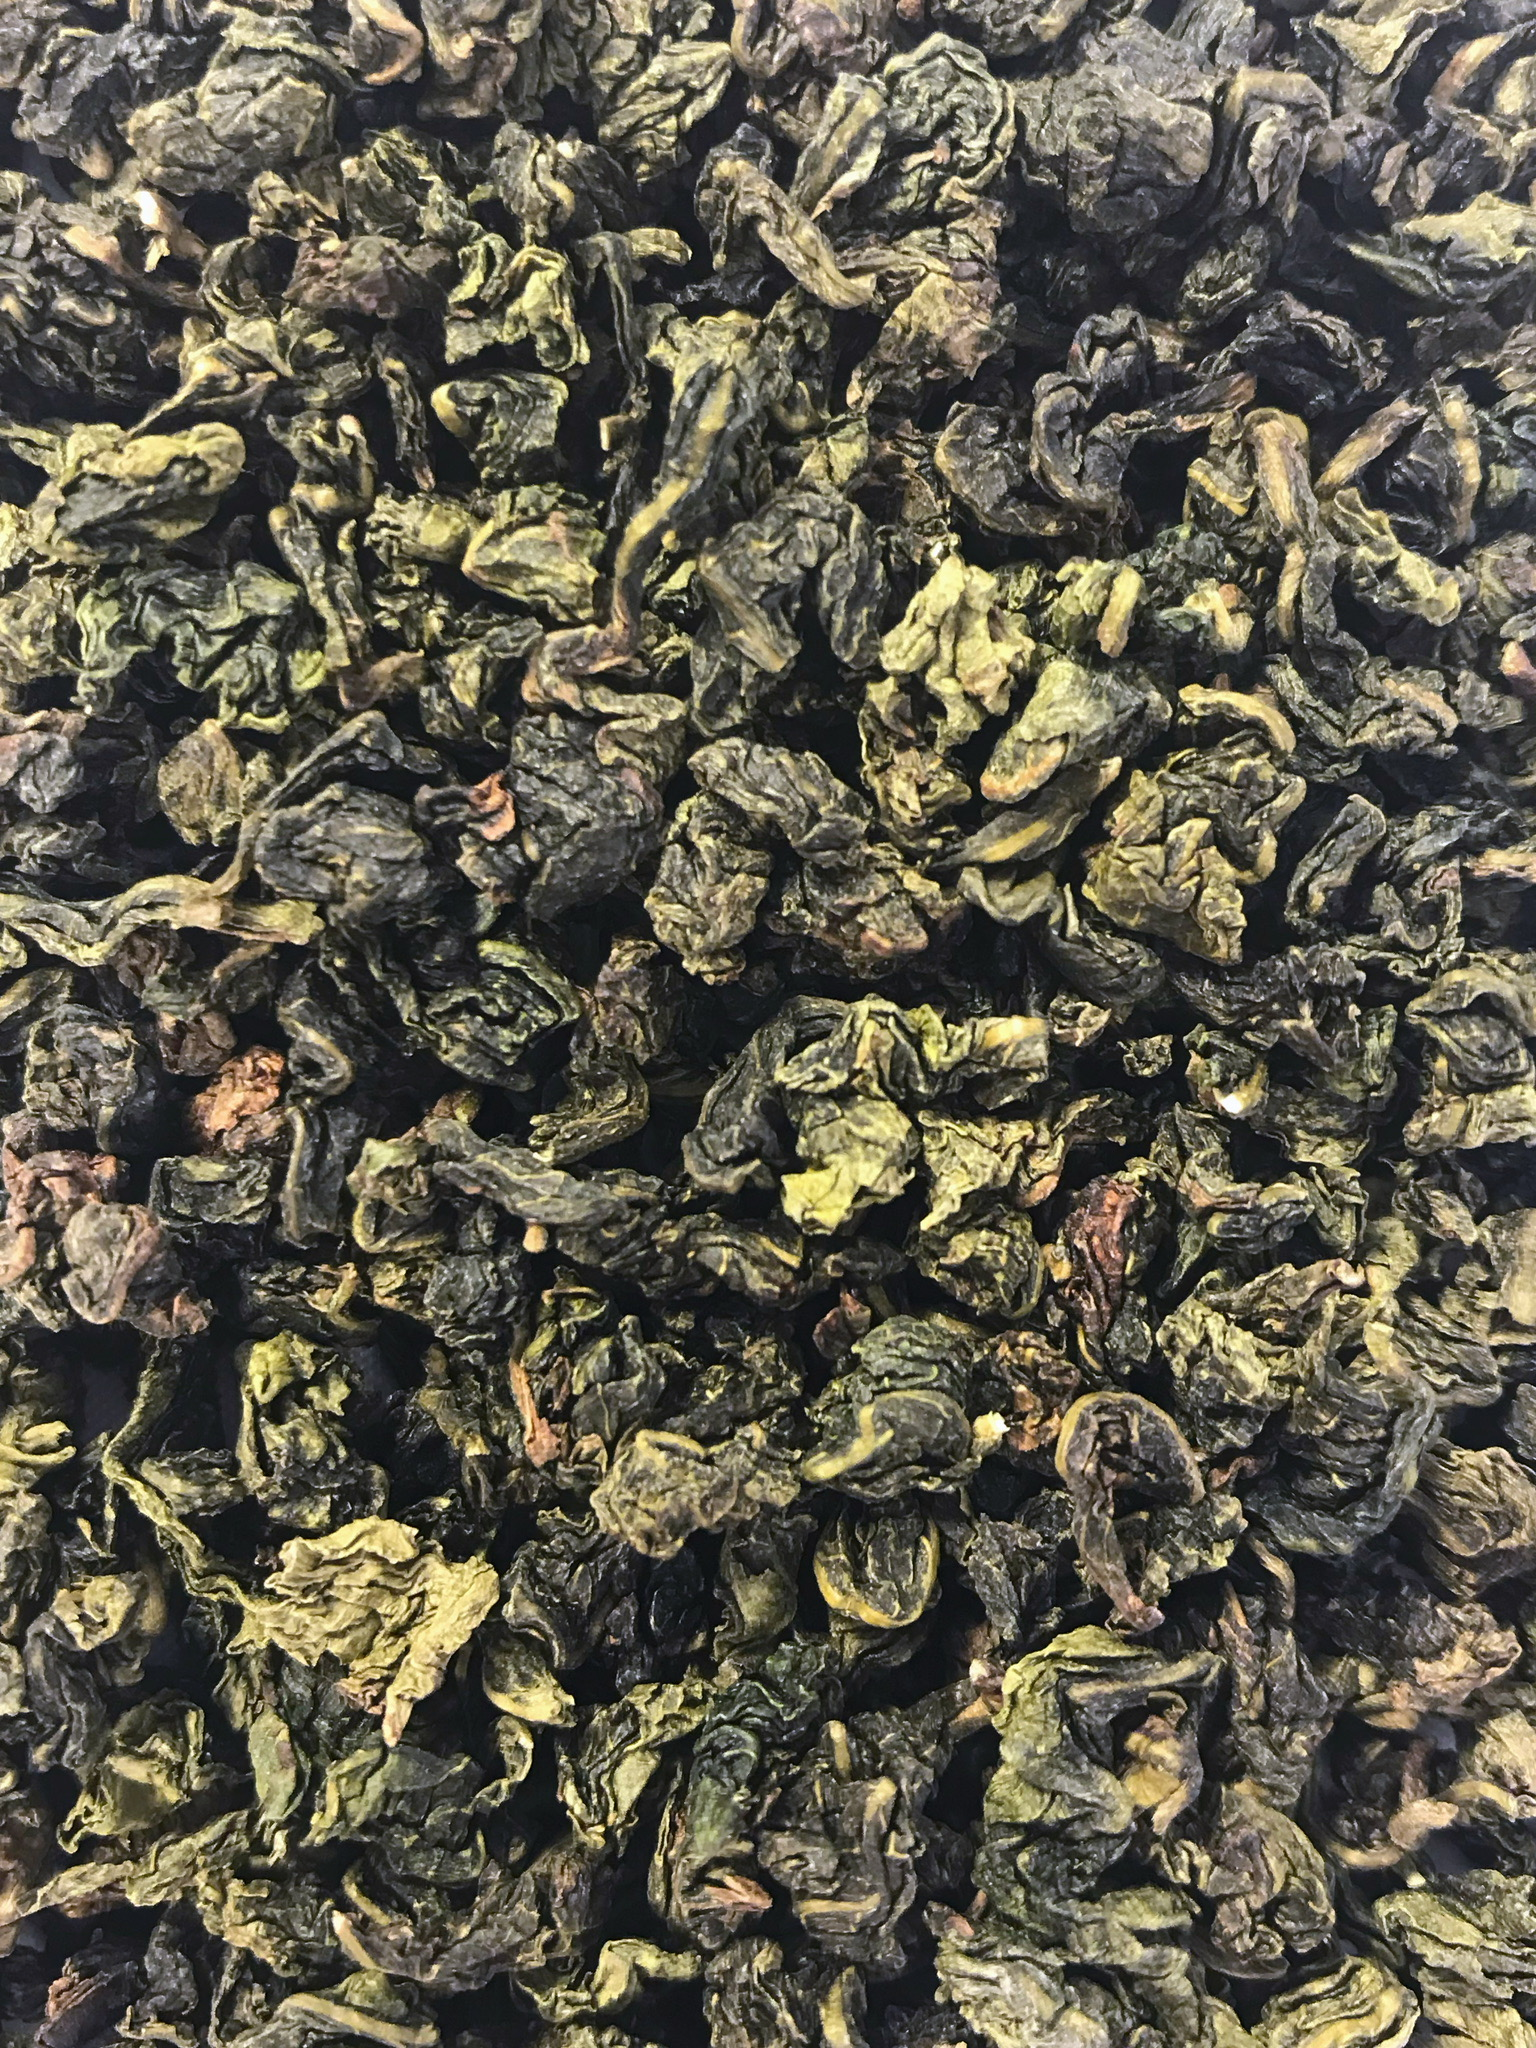 Slimming Oolong